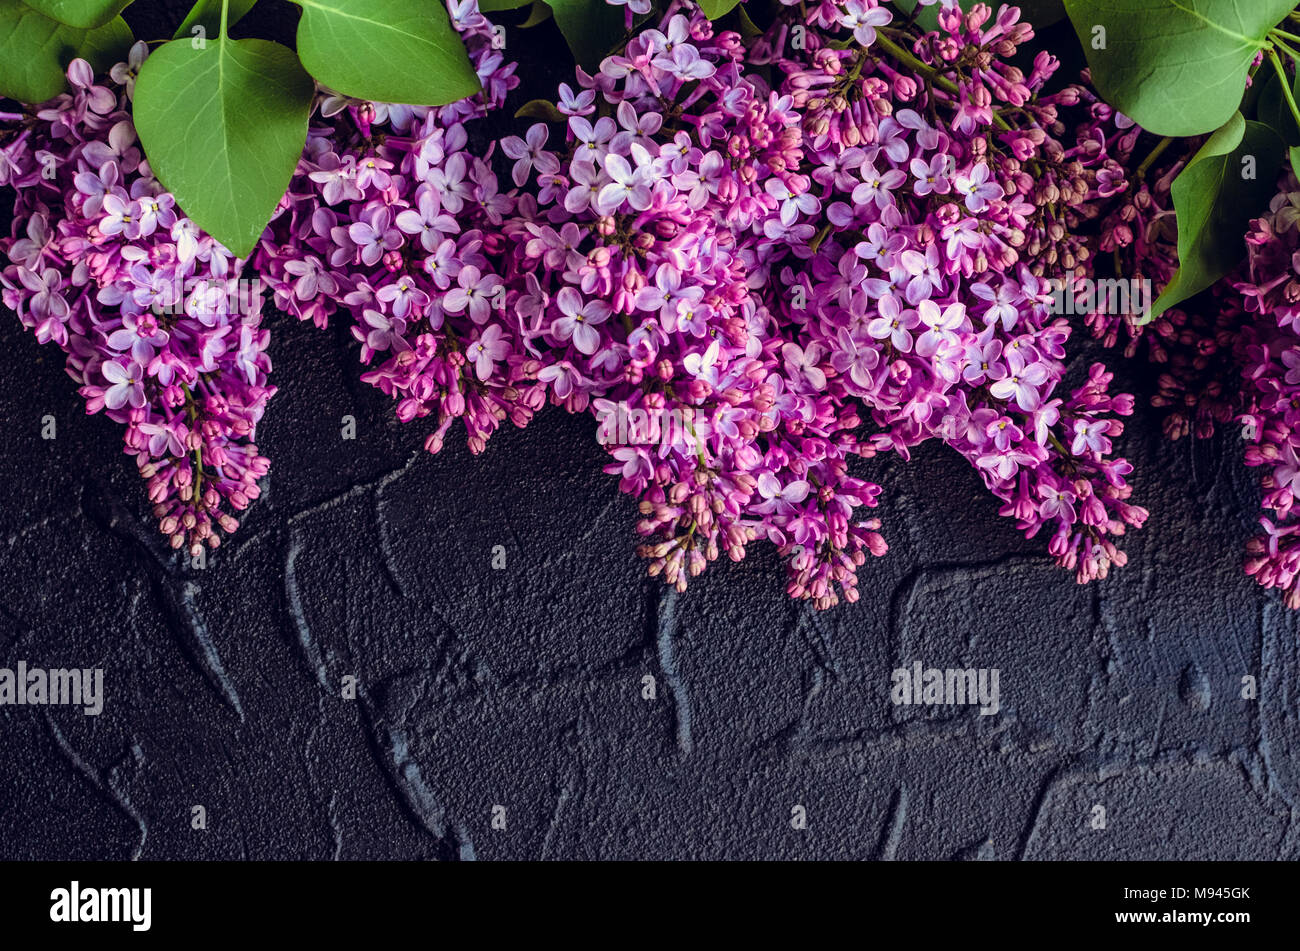 Beautiful spring flowers lilac on dark stone background with place for text. Syringa vulgaris. Happy Mother's Day greetings card. Top view. Copy space - Stock Image